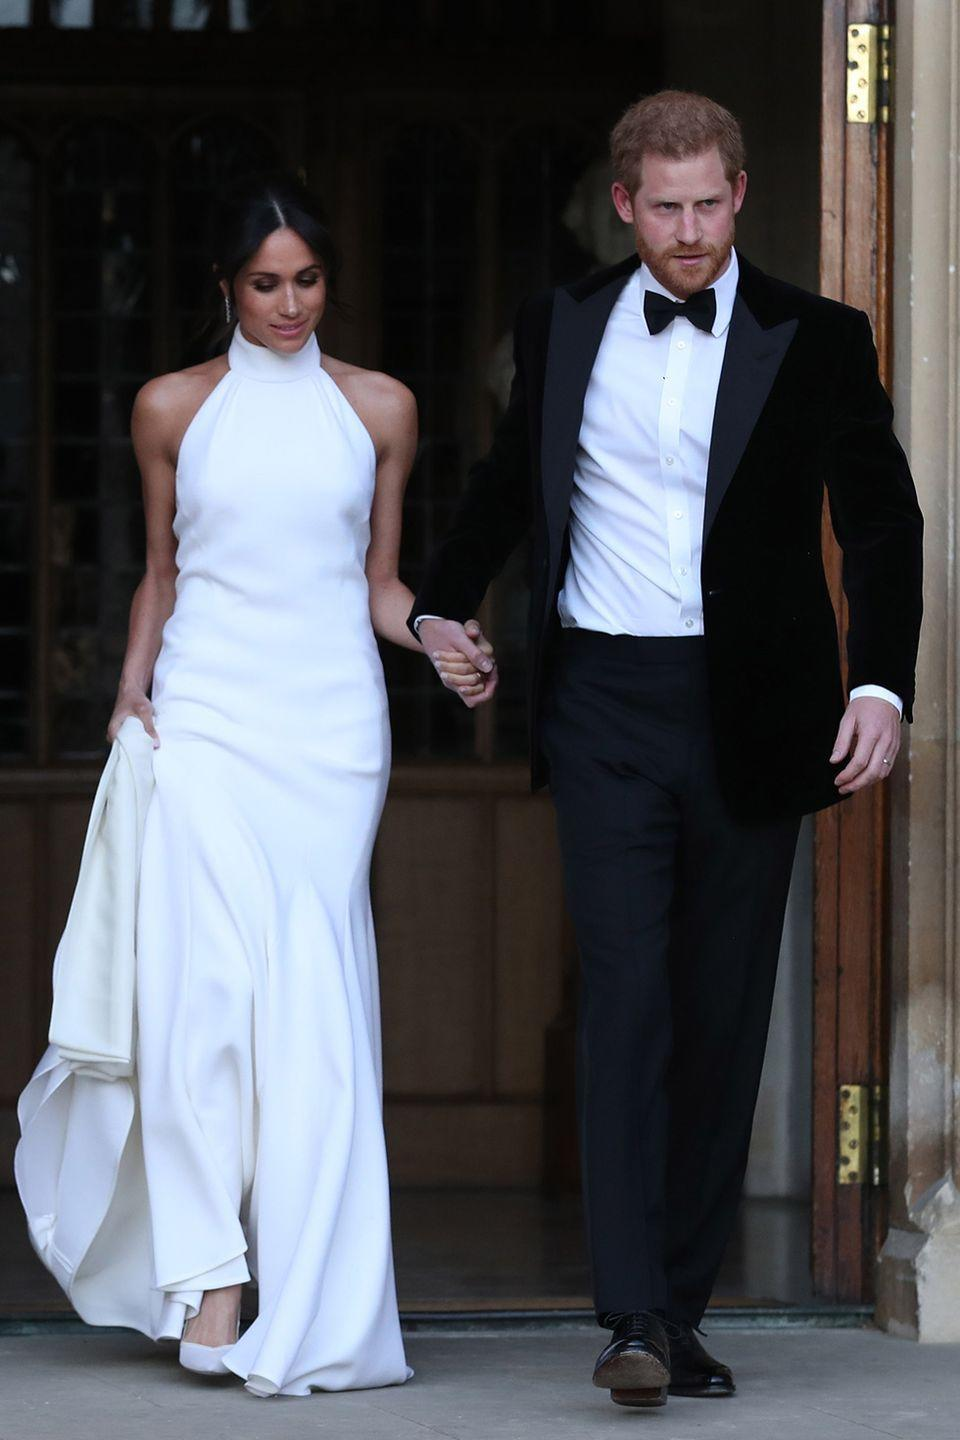 """<p>Again, when you're royalty, you get two wedding dresses. Meghan changed into a sexy halter-neck Stella McCartney white dress for her wedding reception at Frogmore House.</p><p><strong>RELATED</strong>: <a href=""""https://www.goodhousekeeping.com/life/a34407473/the-queen-shut-down-prince-harry-meghan-markle-wedding-day-tiara/"""" rel=""""nofollow noopener"""" target=""""_blank"""" data-ylk=""""slk:The Queen Reportedly Shut Down Prince Harry's Demand That Meghan Markle Get Her Way on Her Wedding Day"""" class=""""link rapid-noclick-resp"""">The Queen Reportedly Shut Down Prince Harry's Demand That Meghan Markle Get Her Way on Her Wedding Day</a></p>"""